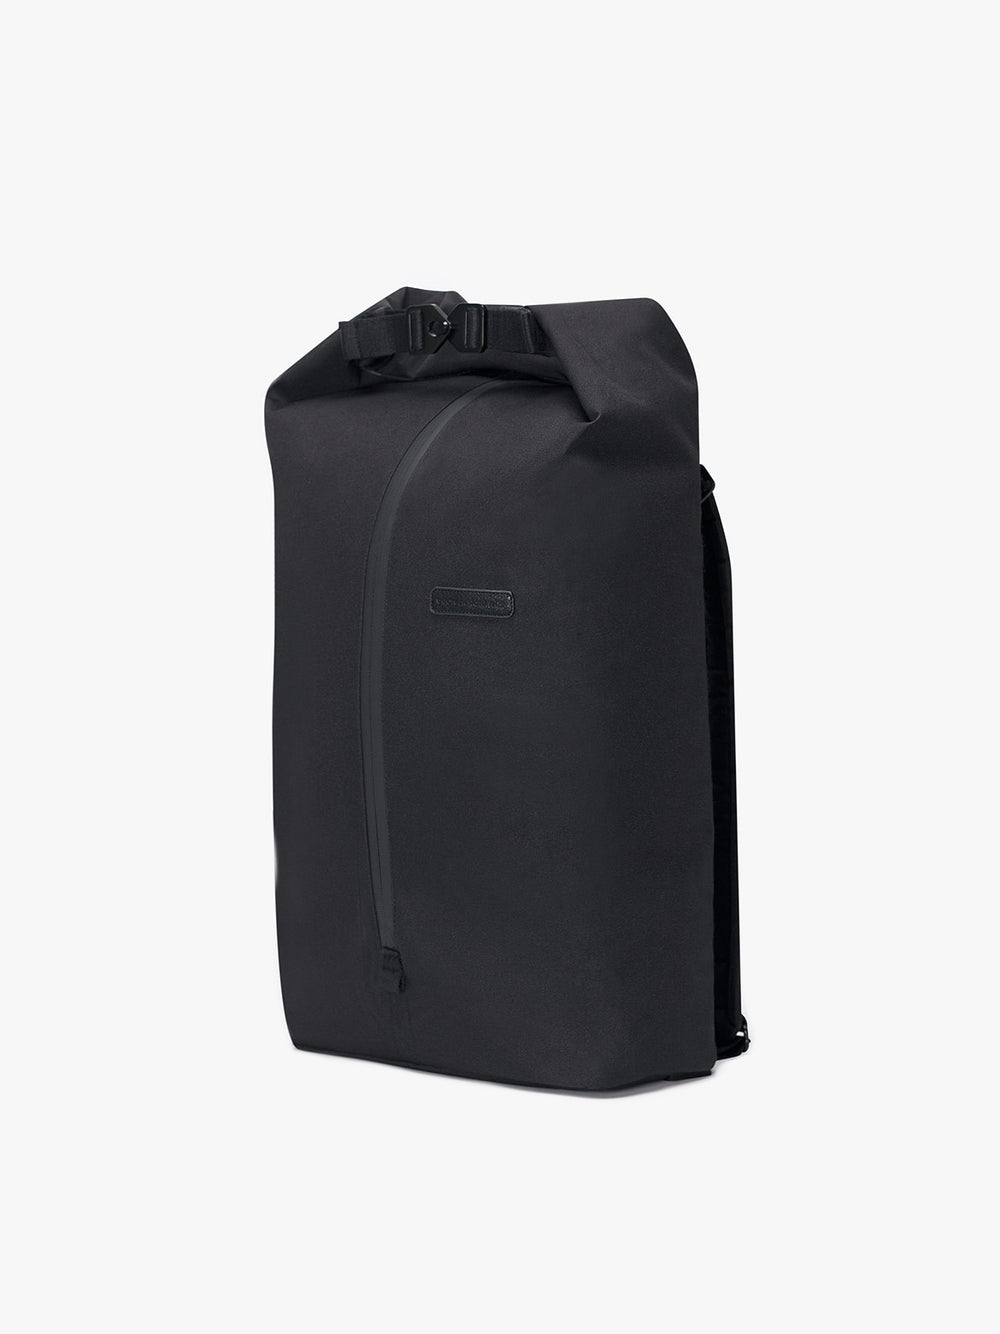 "15.4"" Laptop backpack from Ucon Acrobatics"